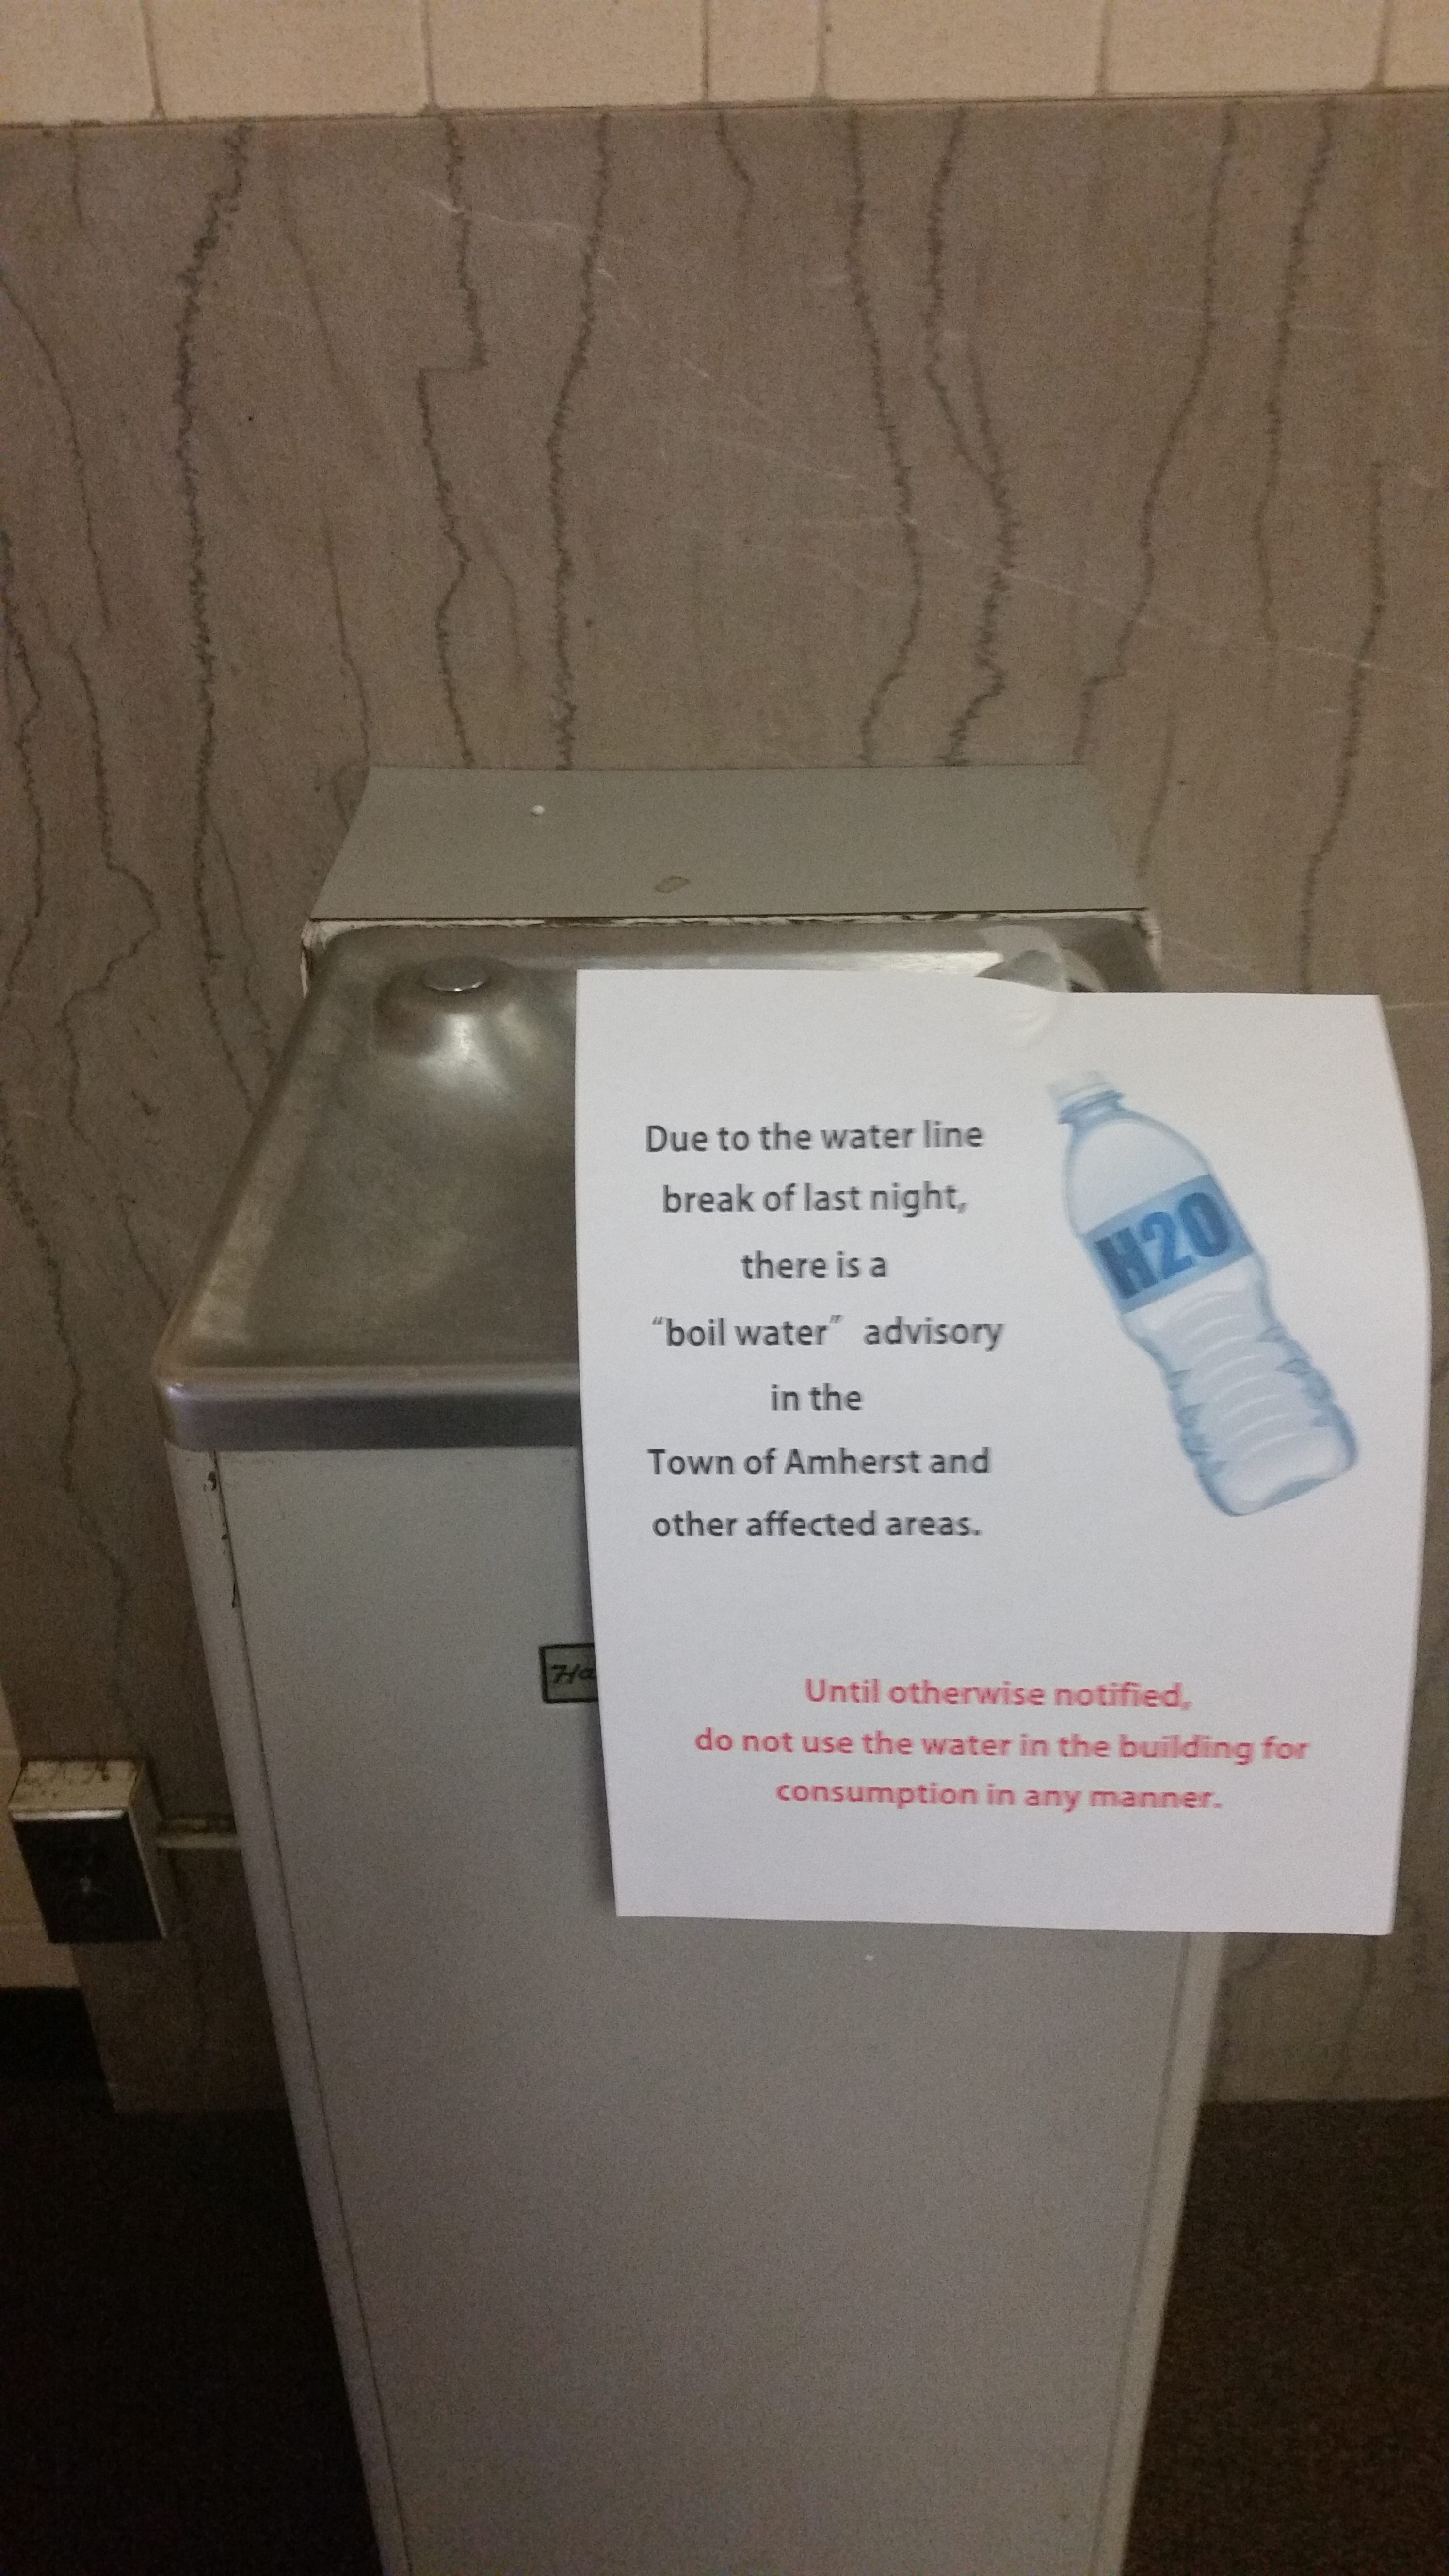 Signs have been placed on water fountains in Amherst town buildings to alert people about the water situation. (James Zymanek, Director of Town of Amherst Emergency Services)